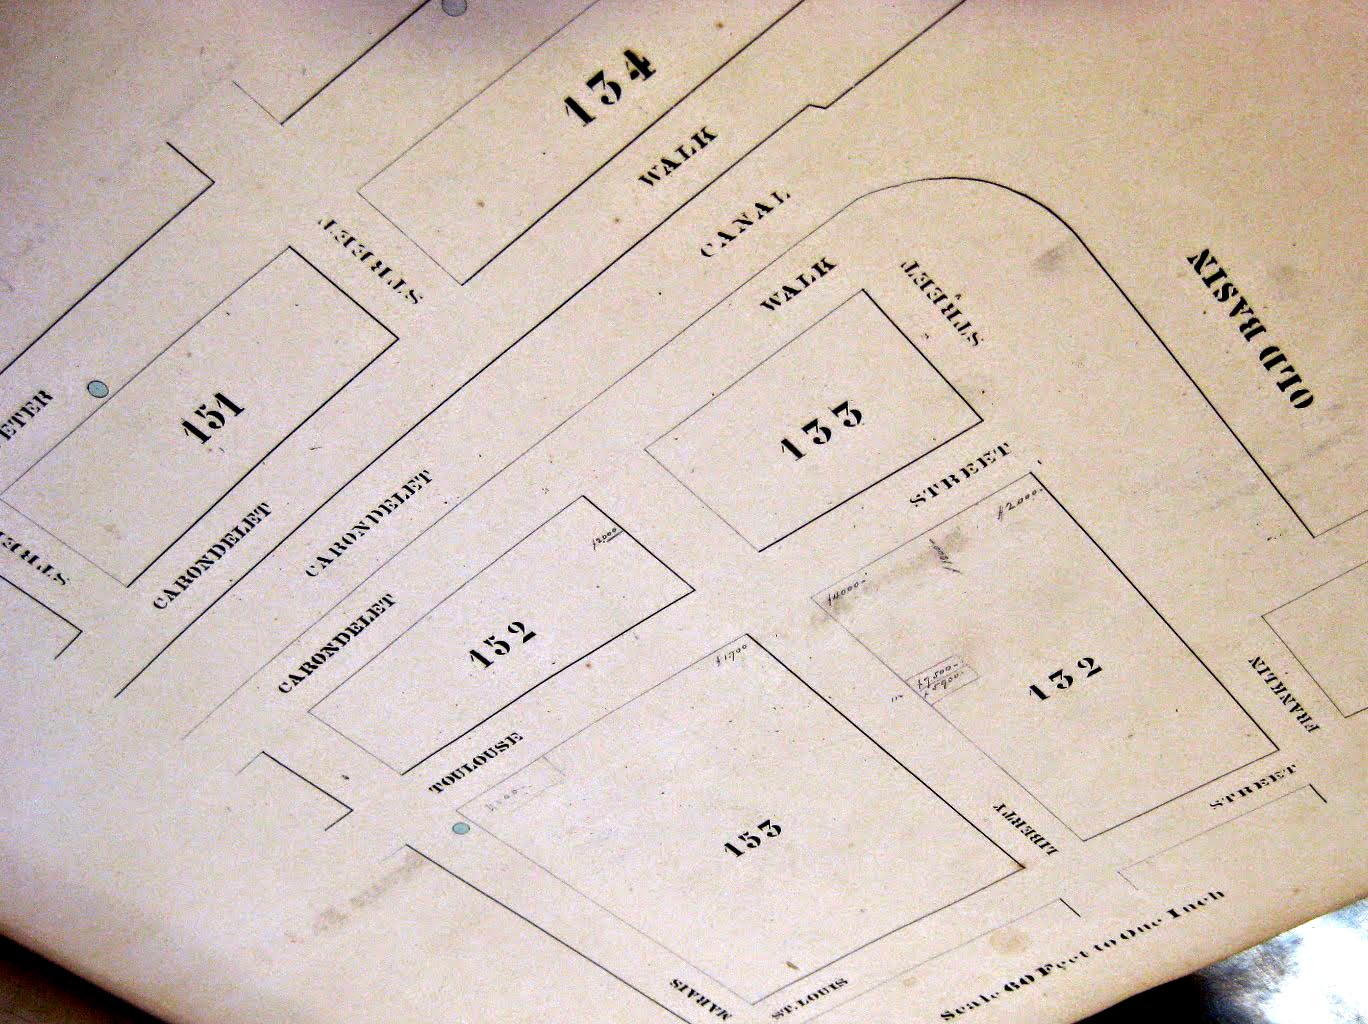 Lhote Properties from the 1873 Langermann Atlas.  Click on the map for a larger view.